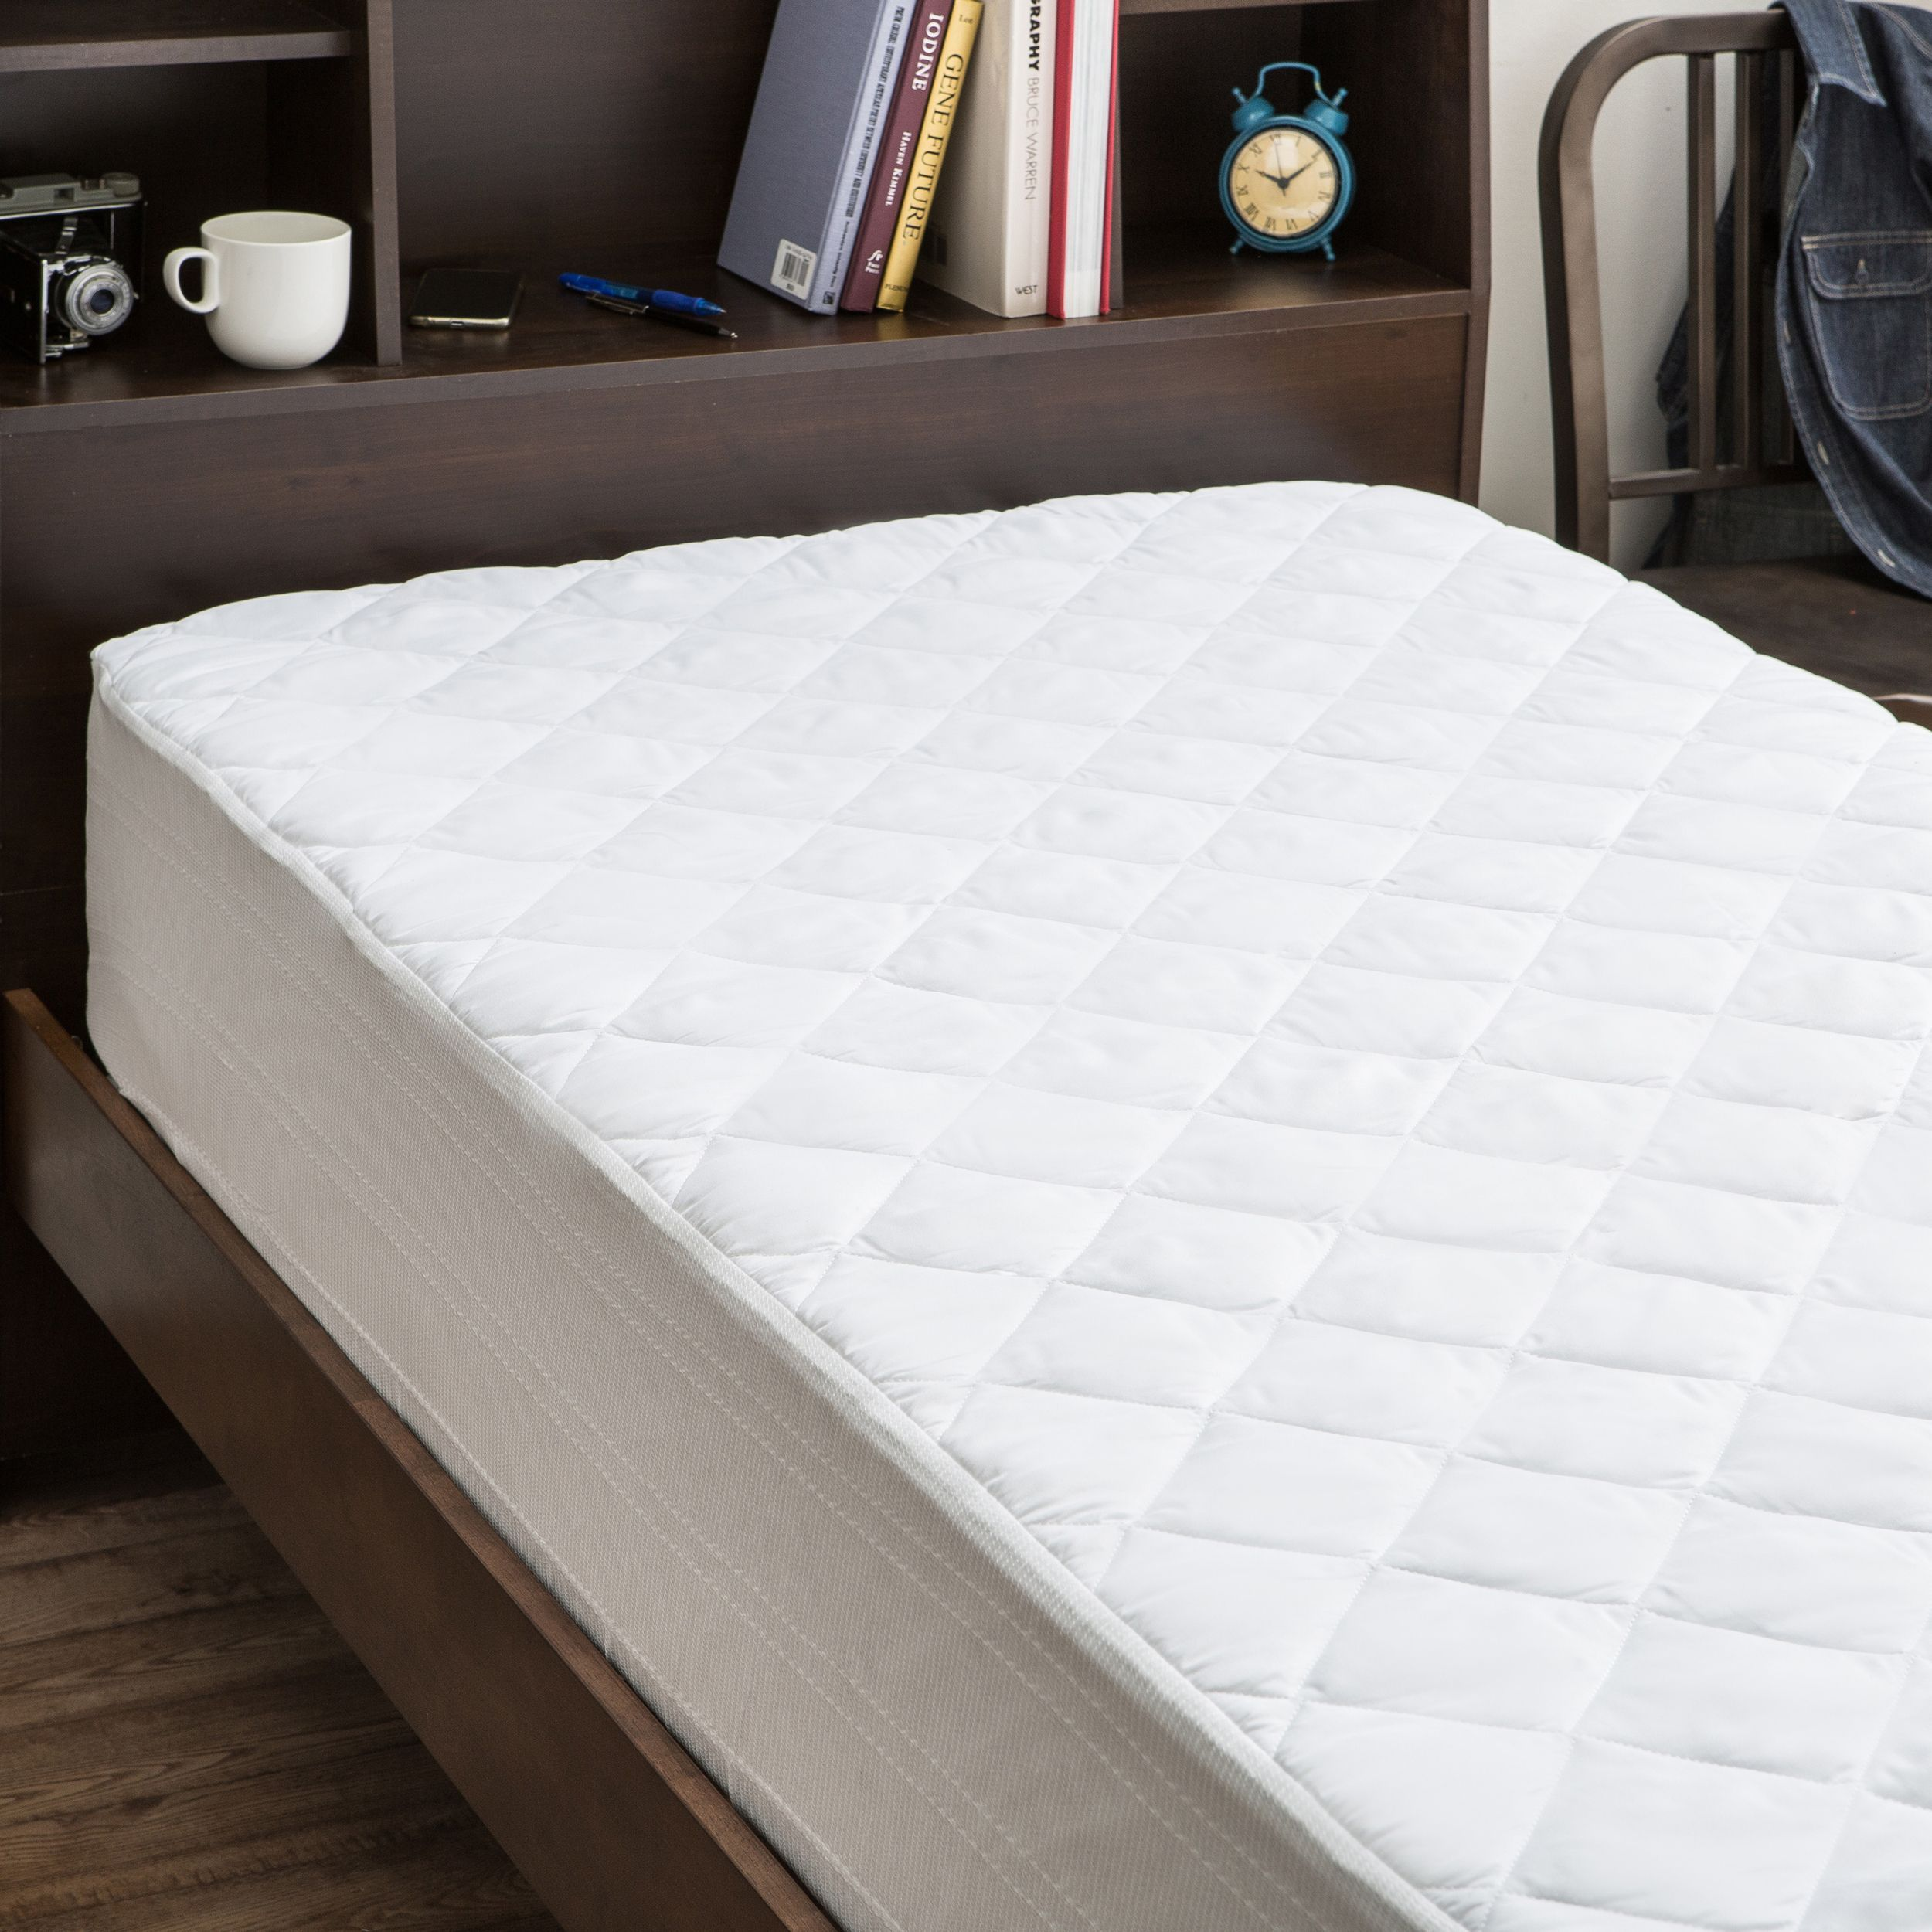 cb protector premium quality a sleep main brands defend waterproof mattress bed classic pad king